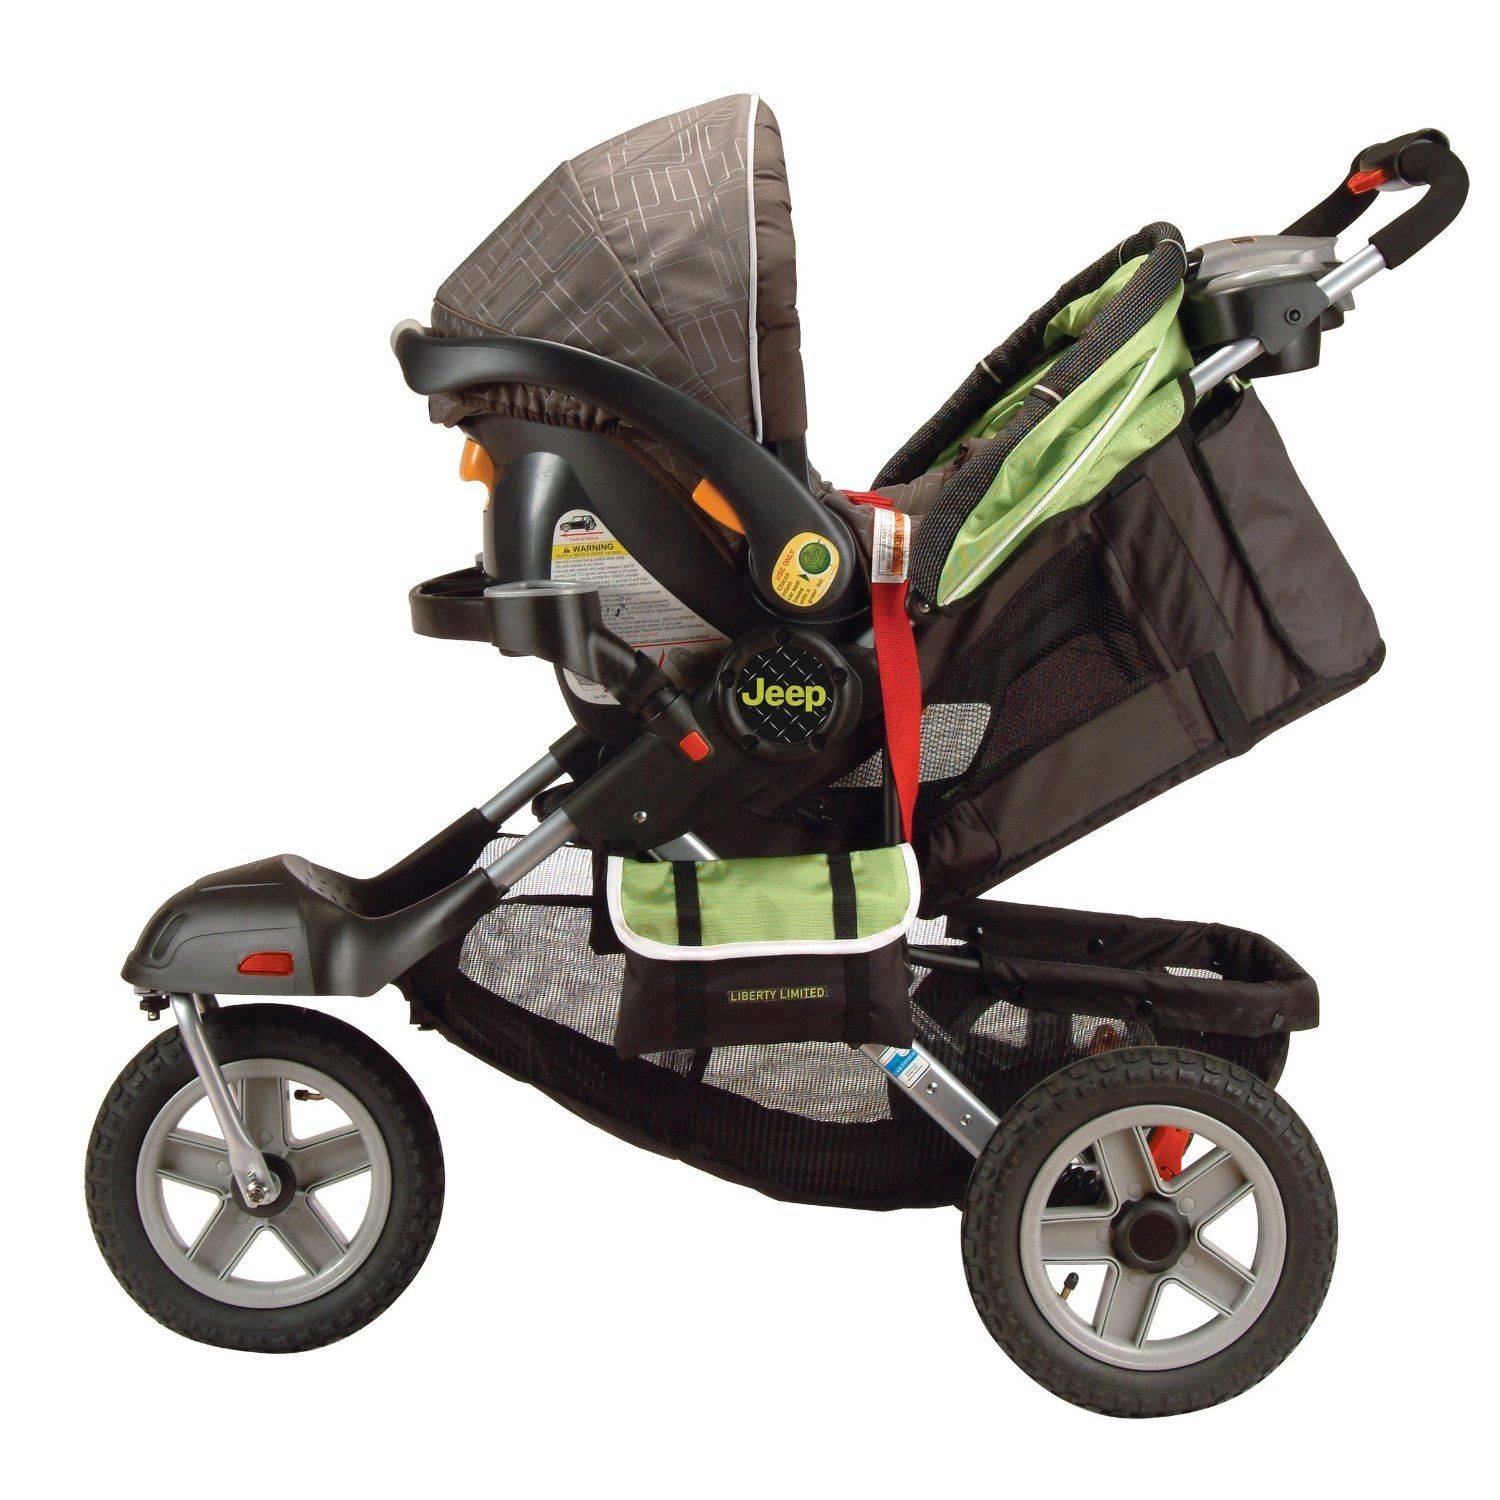 Jeep Stroller Best Ever If Dad Wants One Let Him Get It Lots Of Storage Inflatable Wheels Good Turning Ra With Images Jeep Stroller Best Baby Strollers Baby Strollers